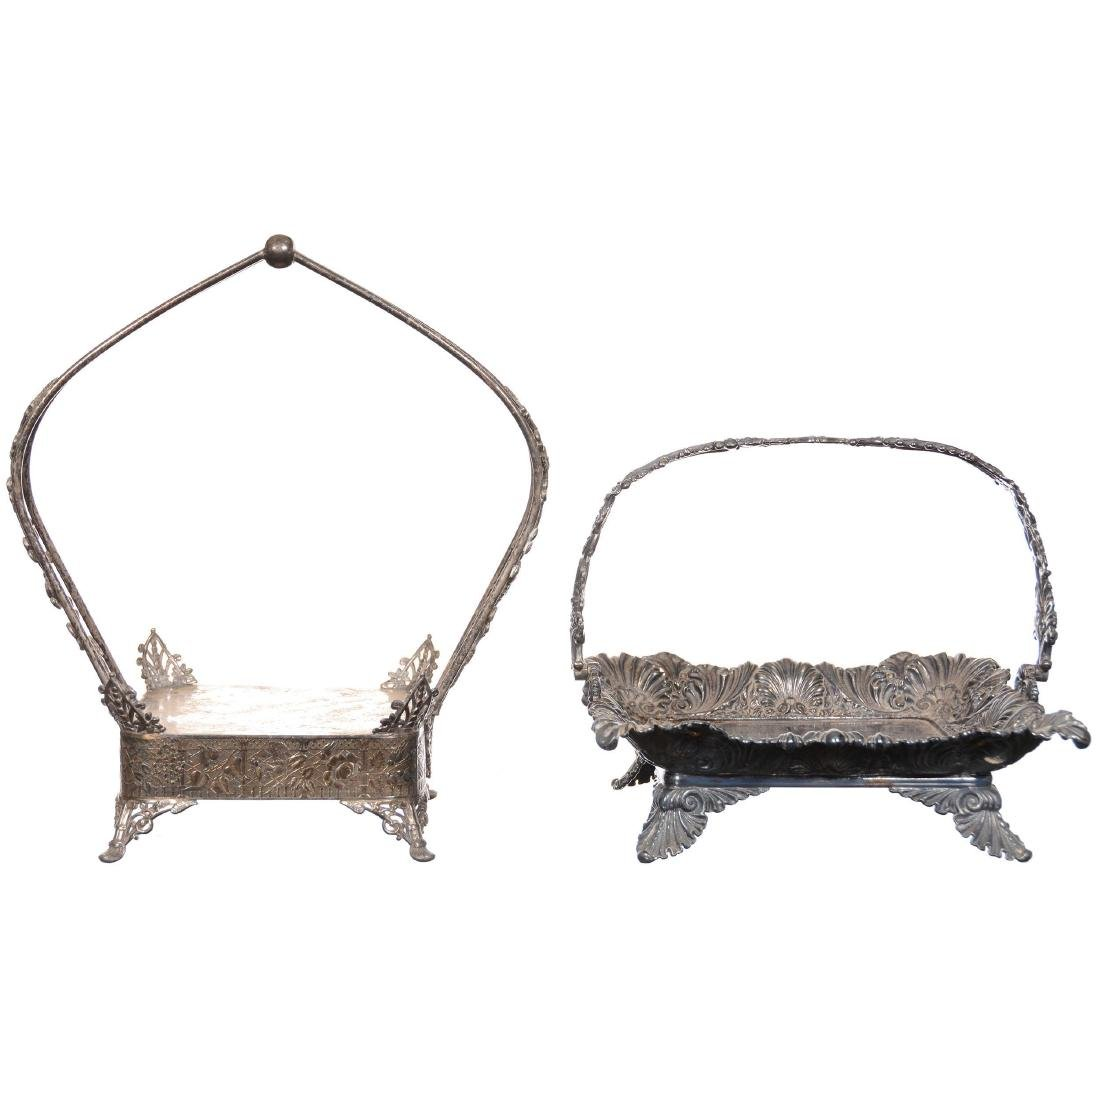 (2) Silverplate Square Shaped Stands